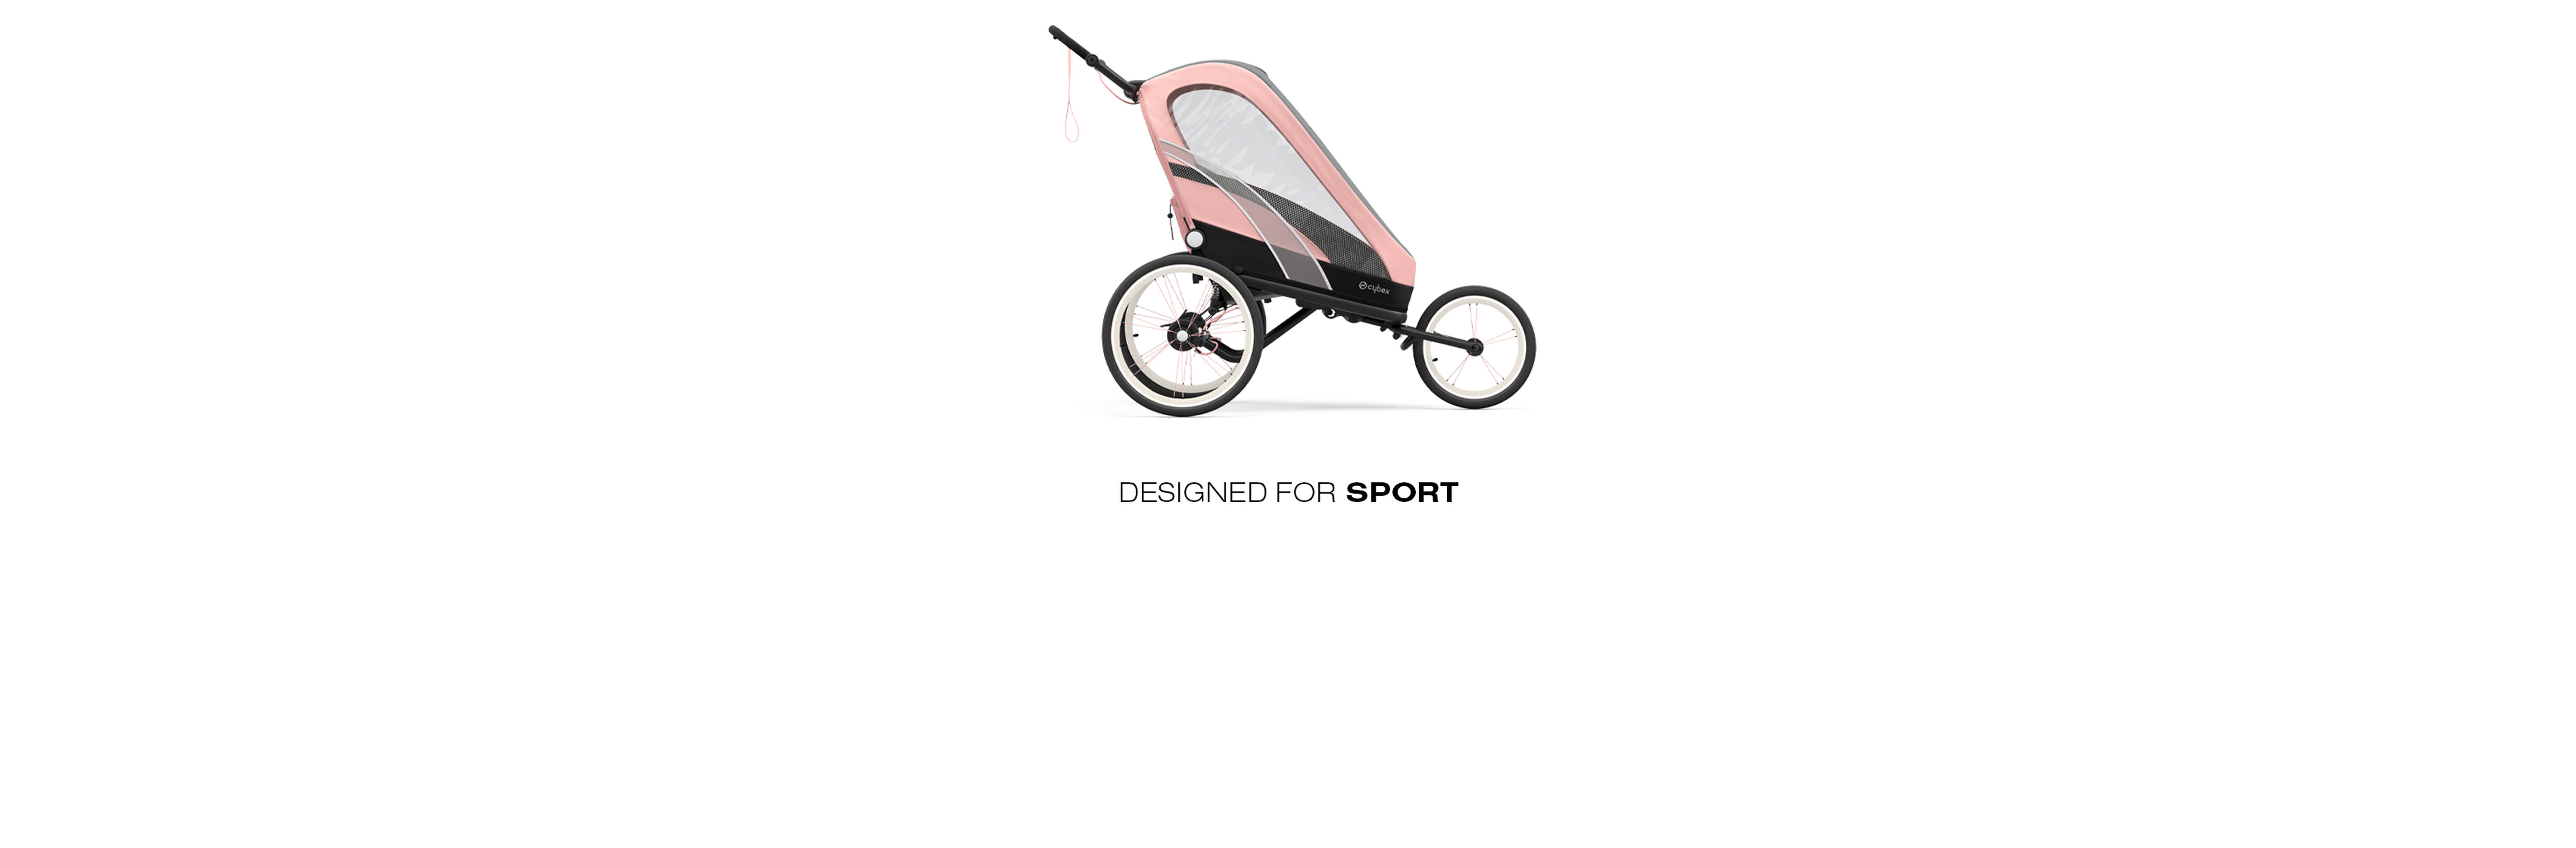 Cybex Gold Sport Zeno Stroller Product Image